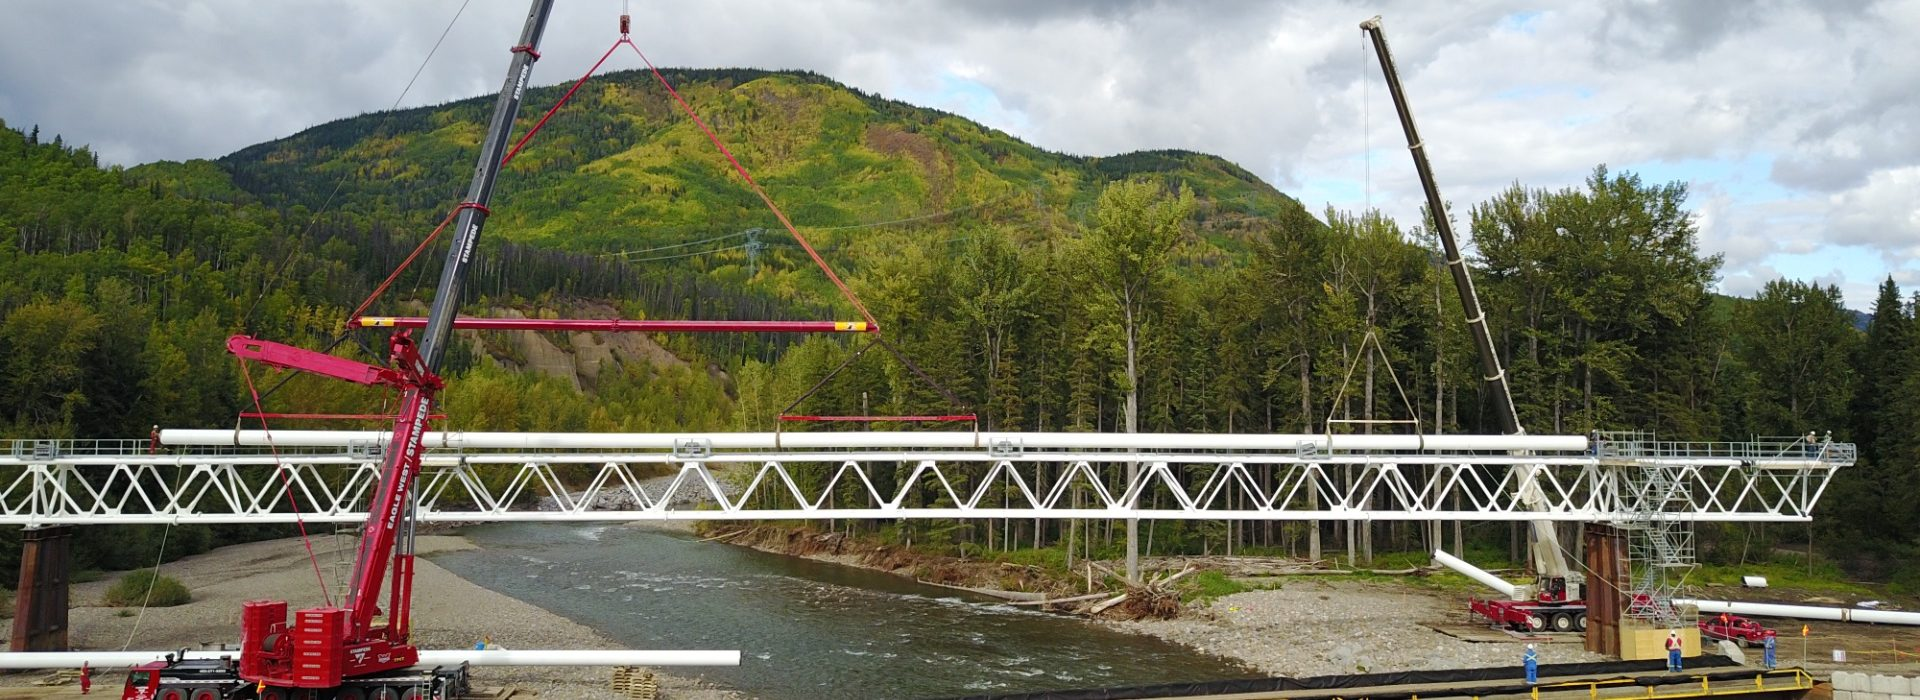 Triple J Pipelines constructing a large pipeline crossing over a river with cranes